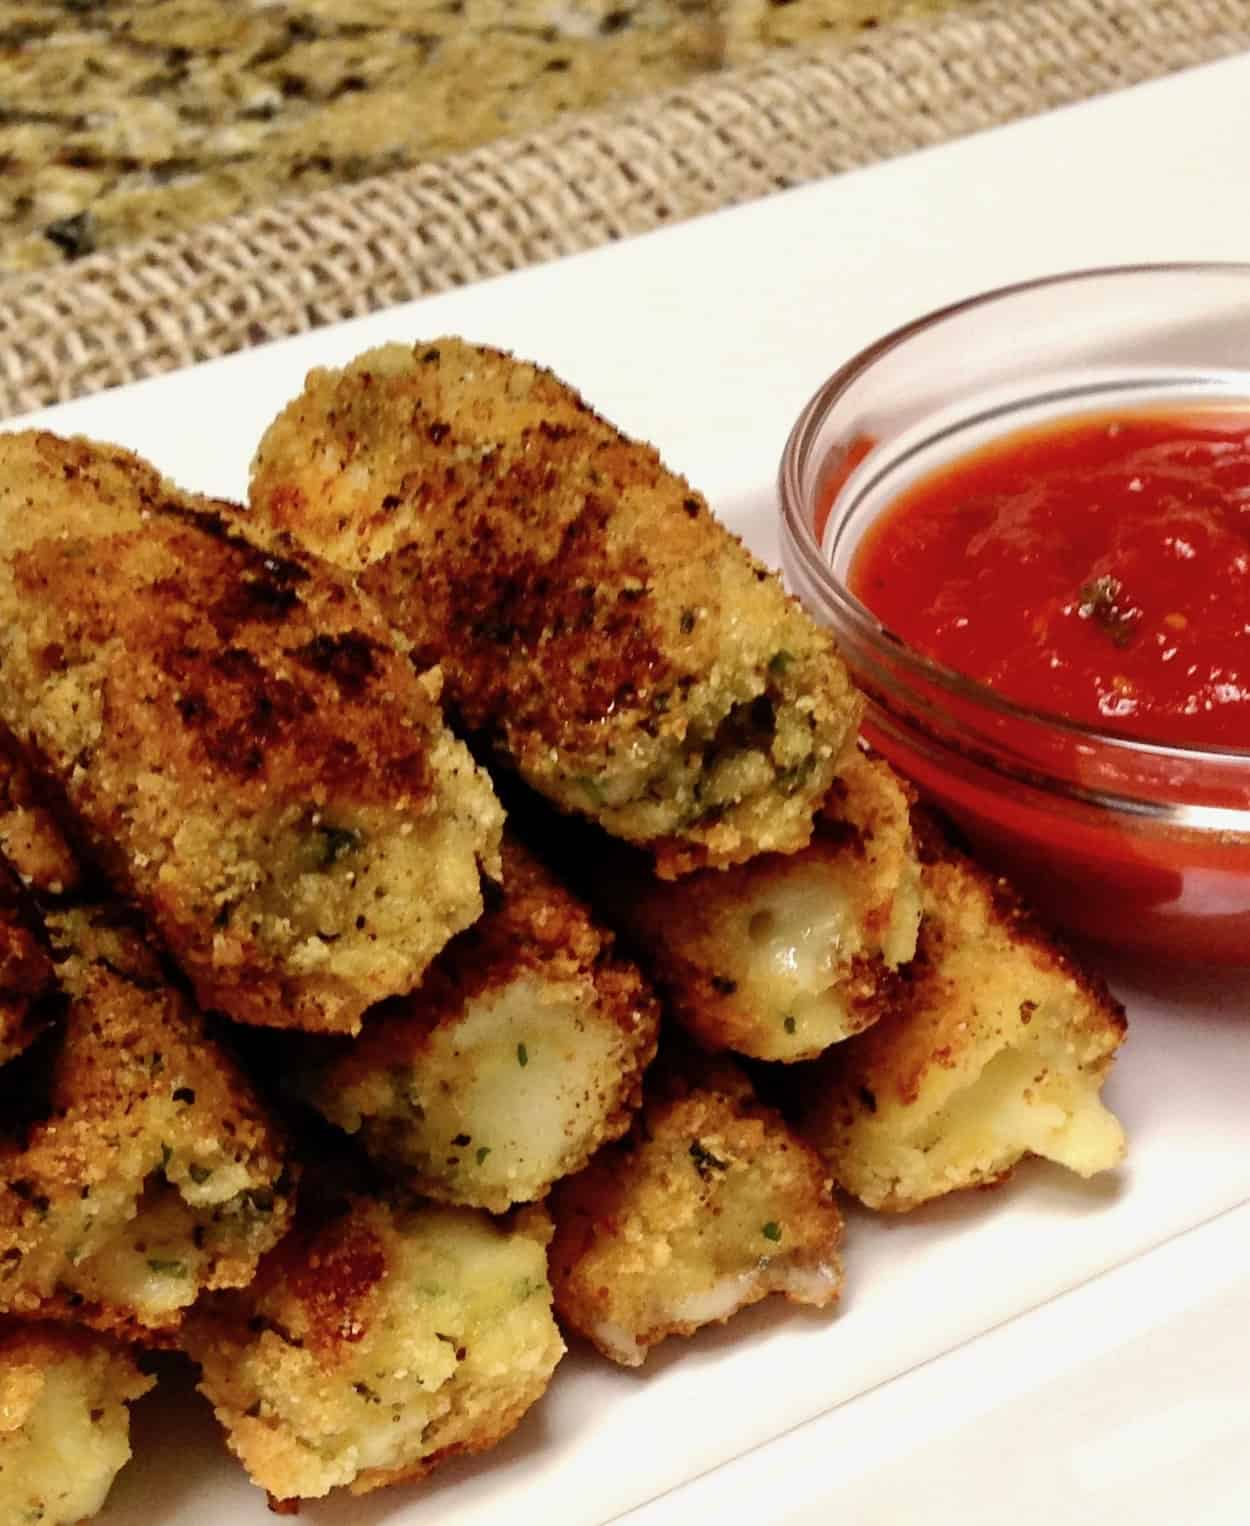 Keto/Low Carb/Gluten Free Mozarella Sticks on Serving Plate with Red Sauce